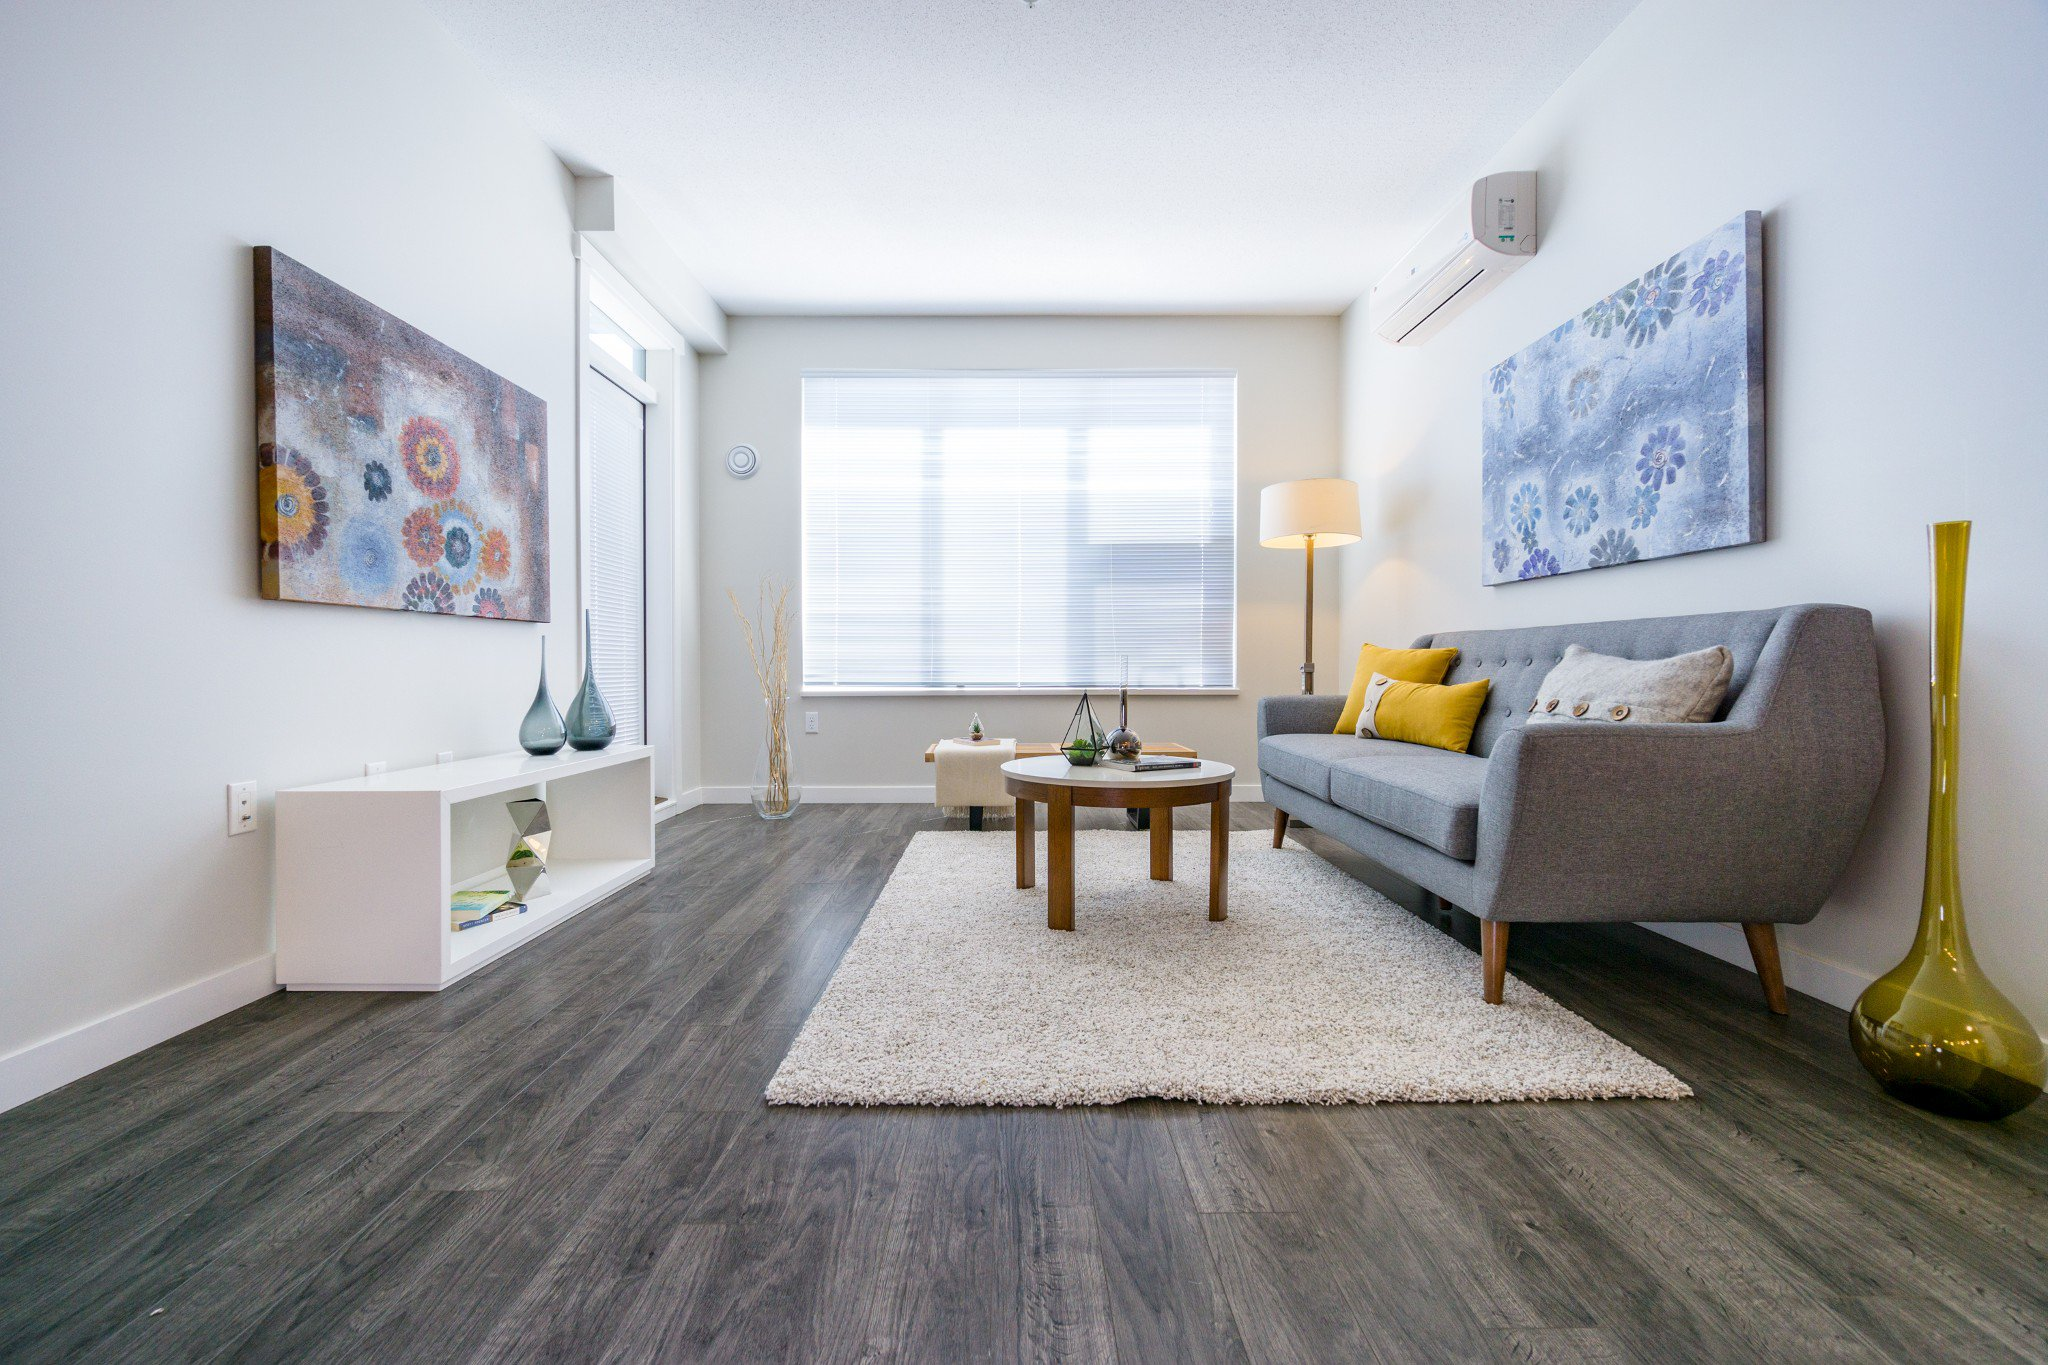 """Photo 15: Photos: 402 9311 ALEXANDRA Road in Richmond: West Cambie Condo for sale in """"ALEXANDRA COURT"""" : MLS®# R2266613"""